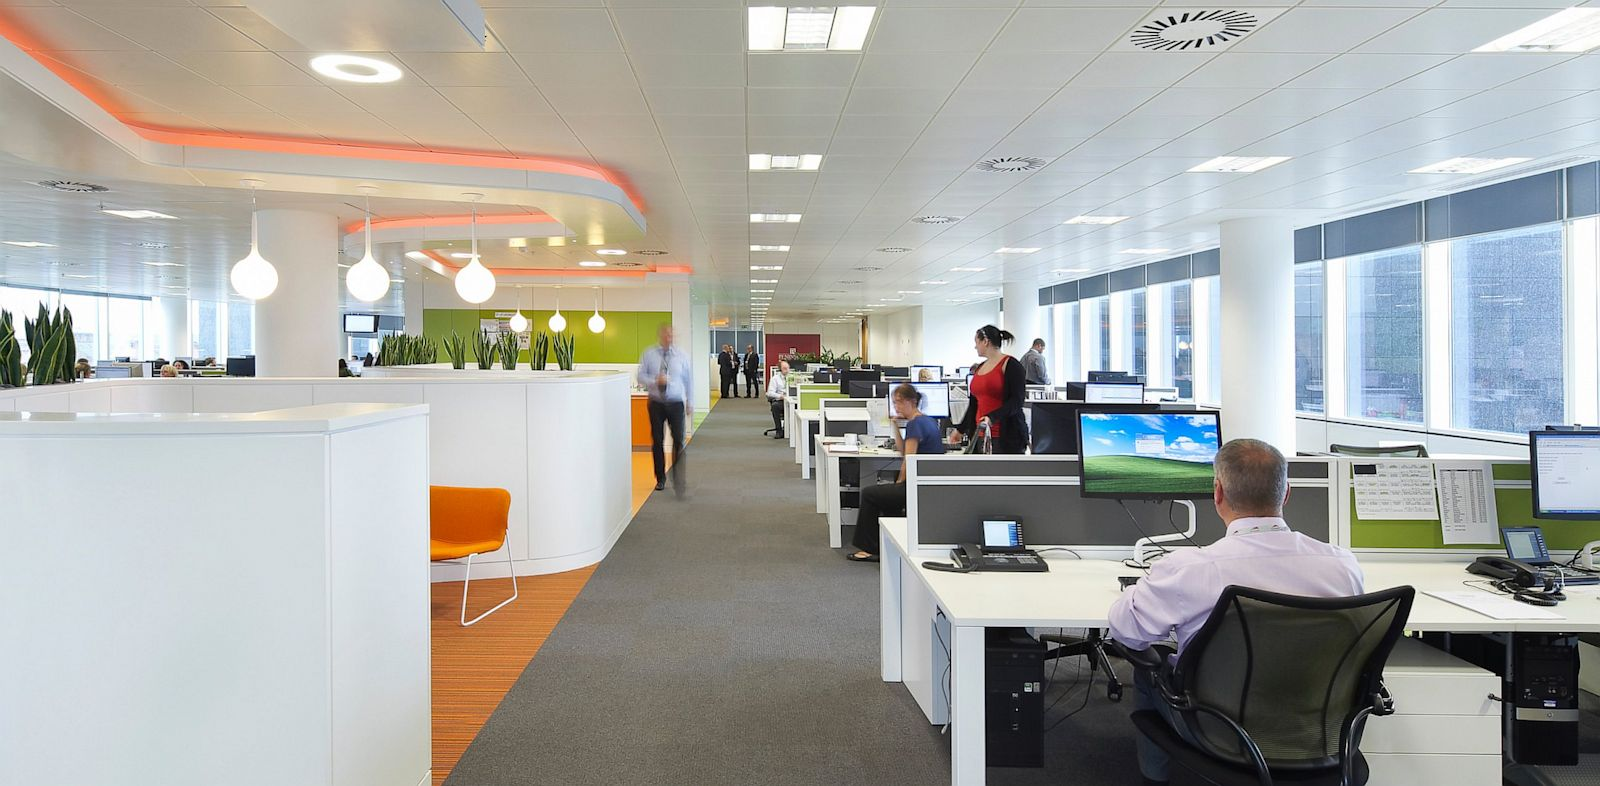 PHOTO: Open-plan office